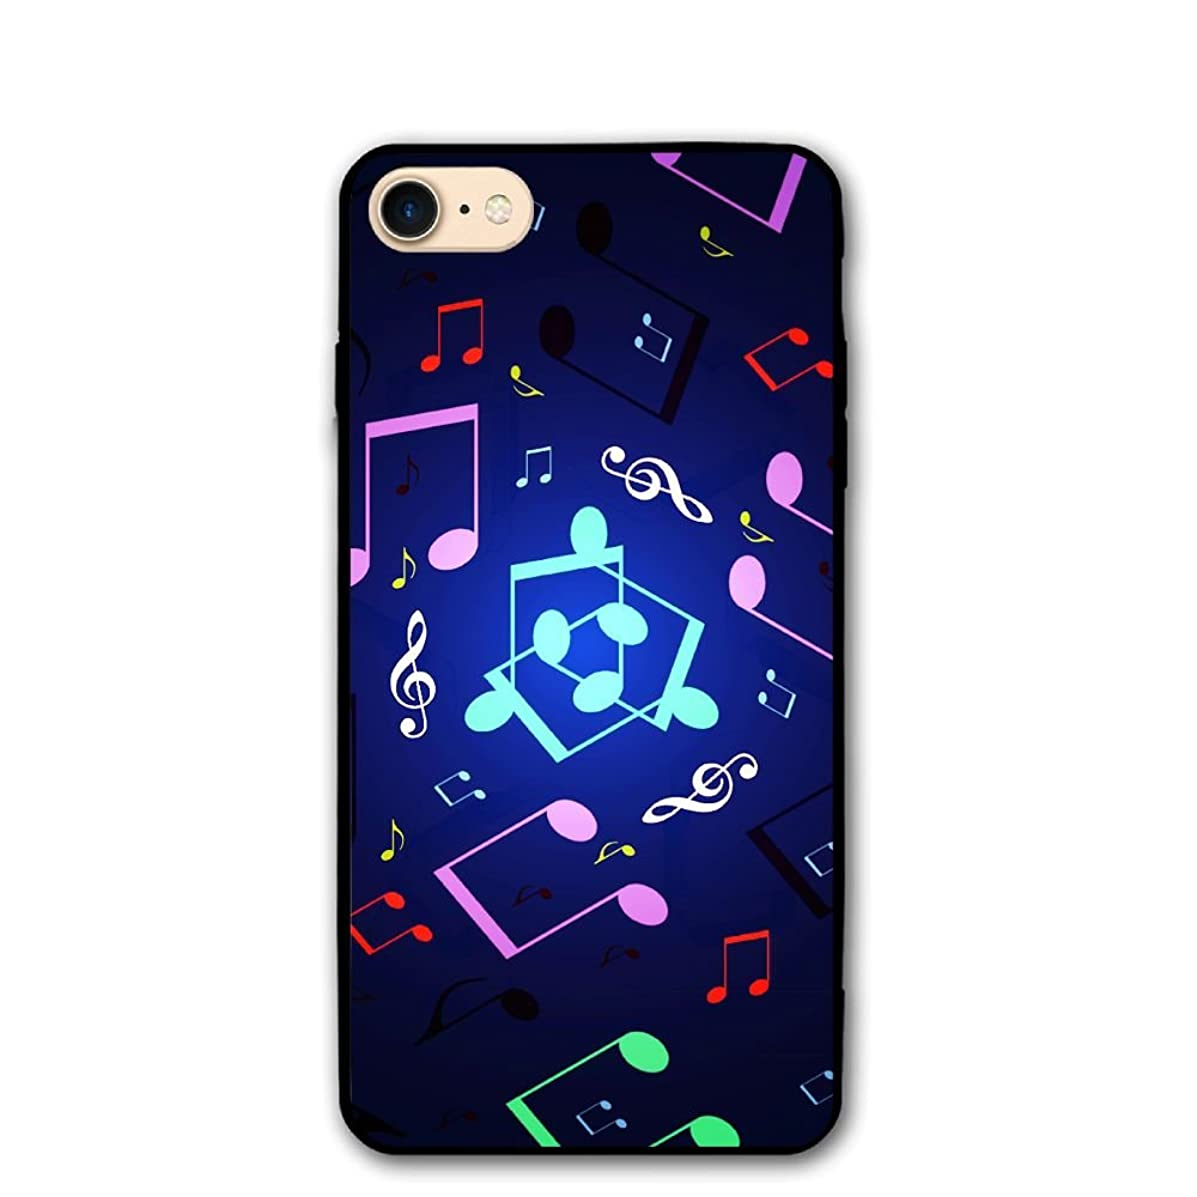 4.7 Inch iPhone 8 Case Musical Notes Pattern Anti-Scratch Shock Proof Hard PC Protective Case Cover